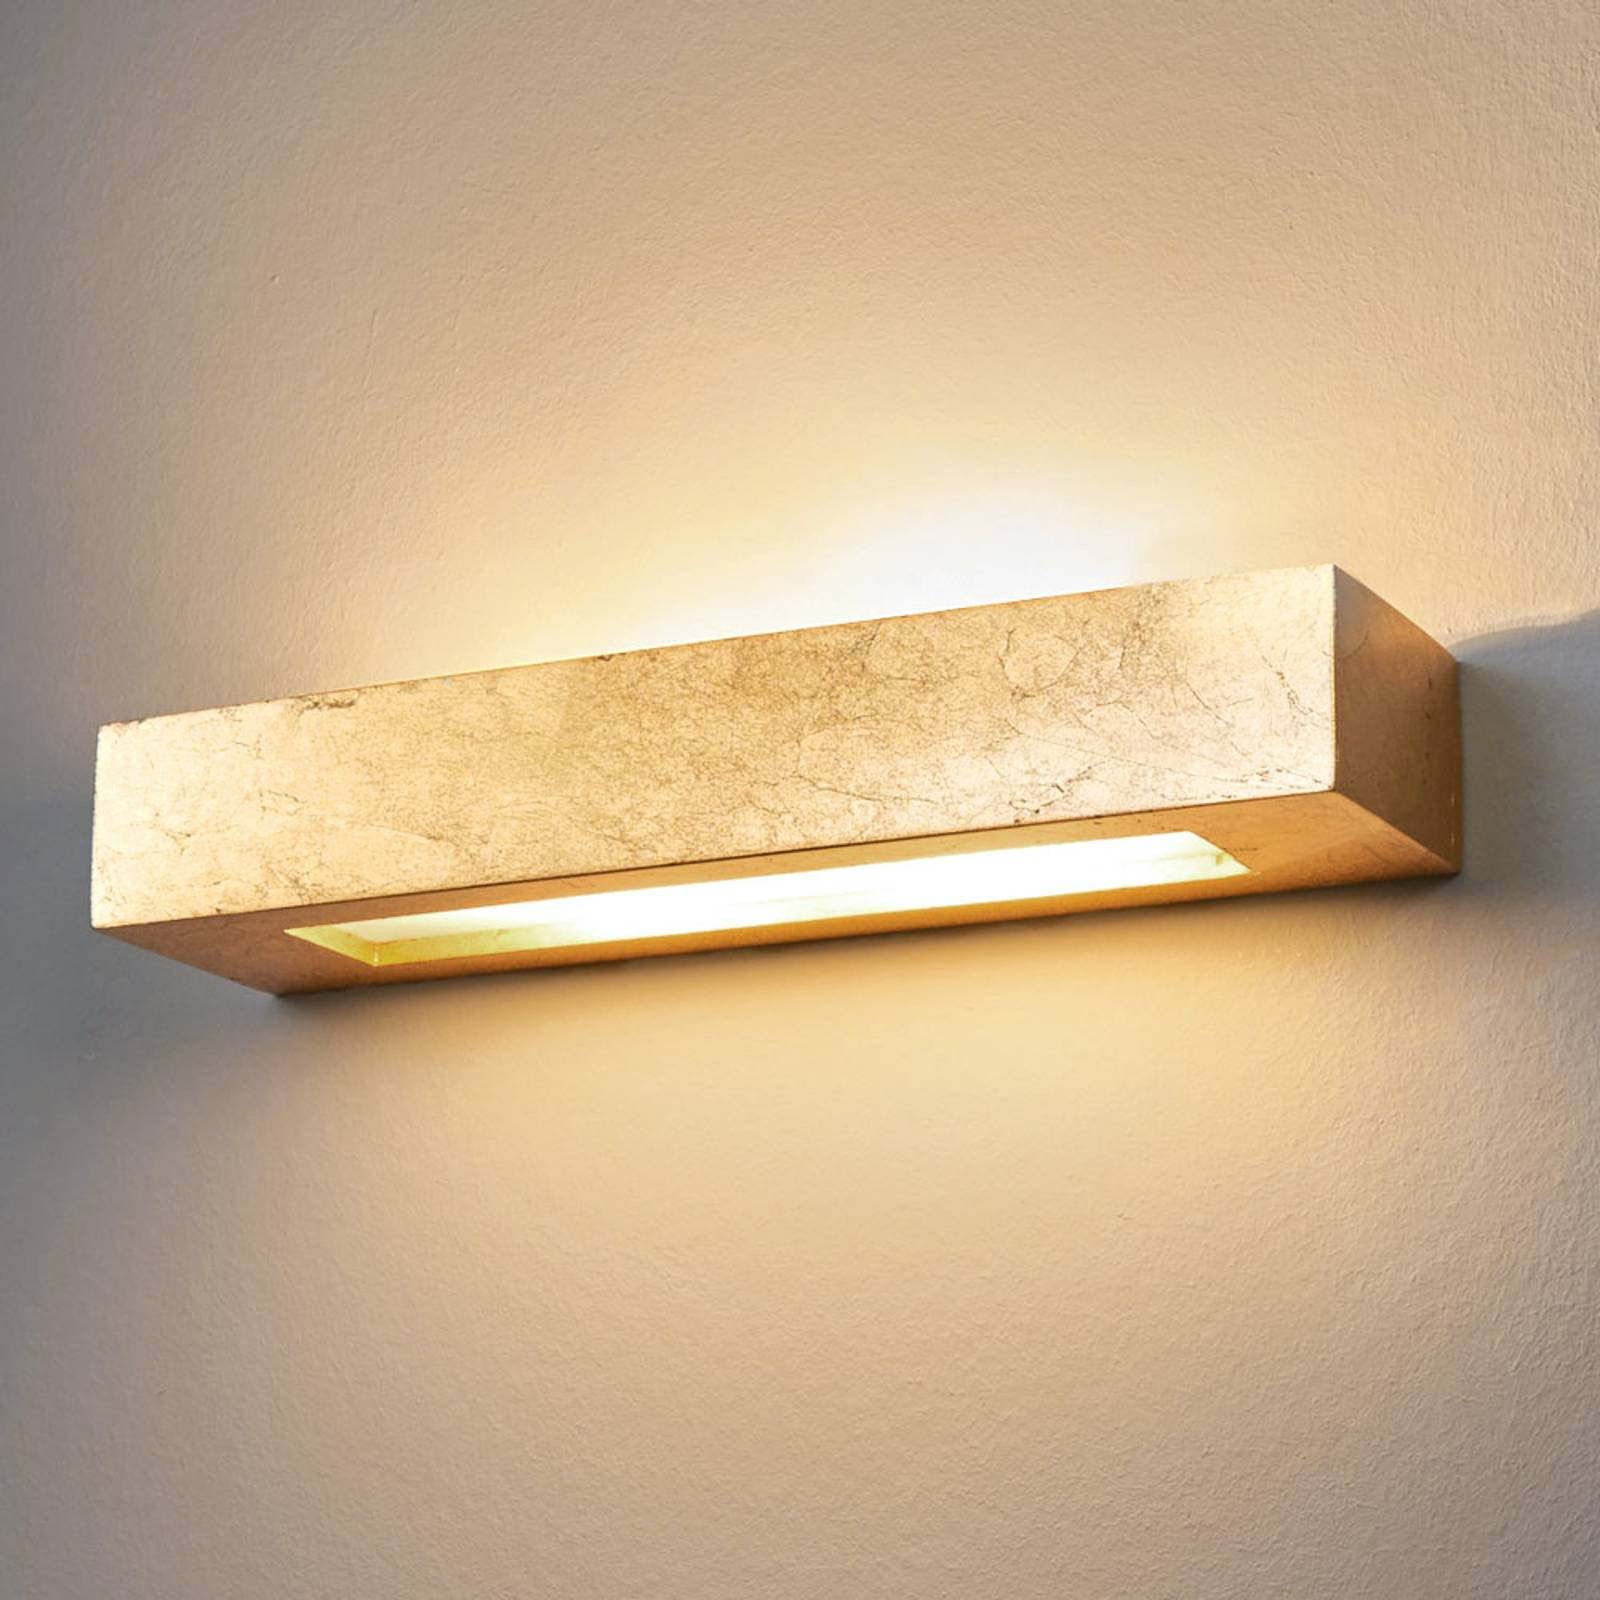 Angular plaster wall light Emina in gold from Lampenwelt.com